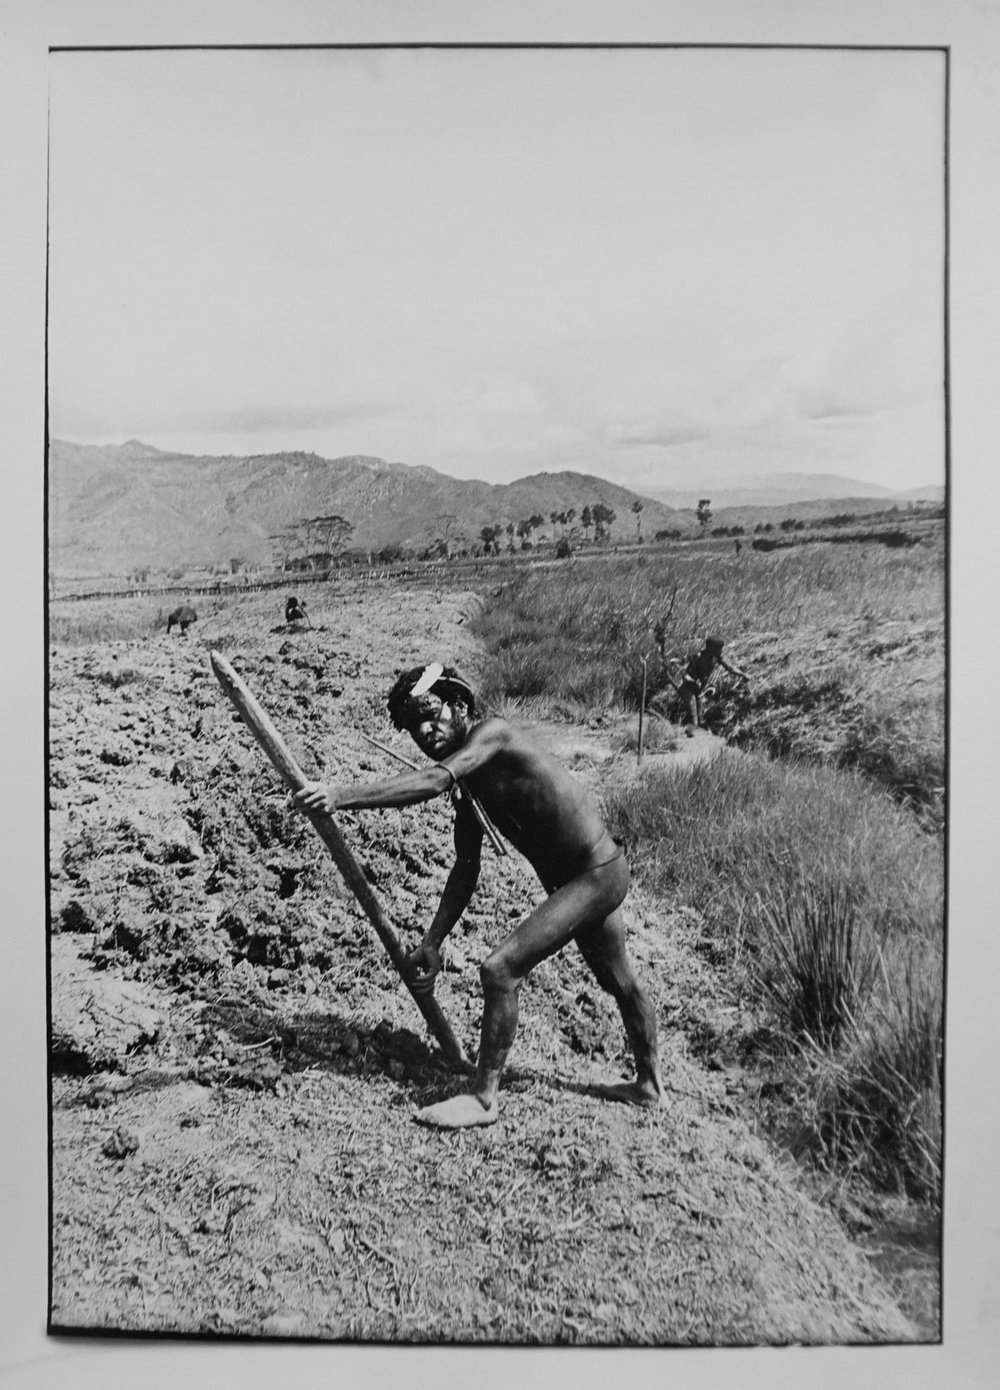 4. Richard Woldendorp, 'Turning soil for sweet potato crop, Baliem Valley, West Irian Jaya, Indonesia', BW201, taken and printed in 1971, Vintage Print.